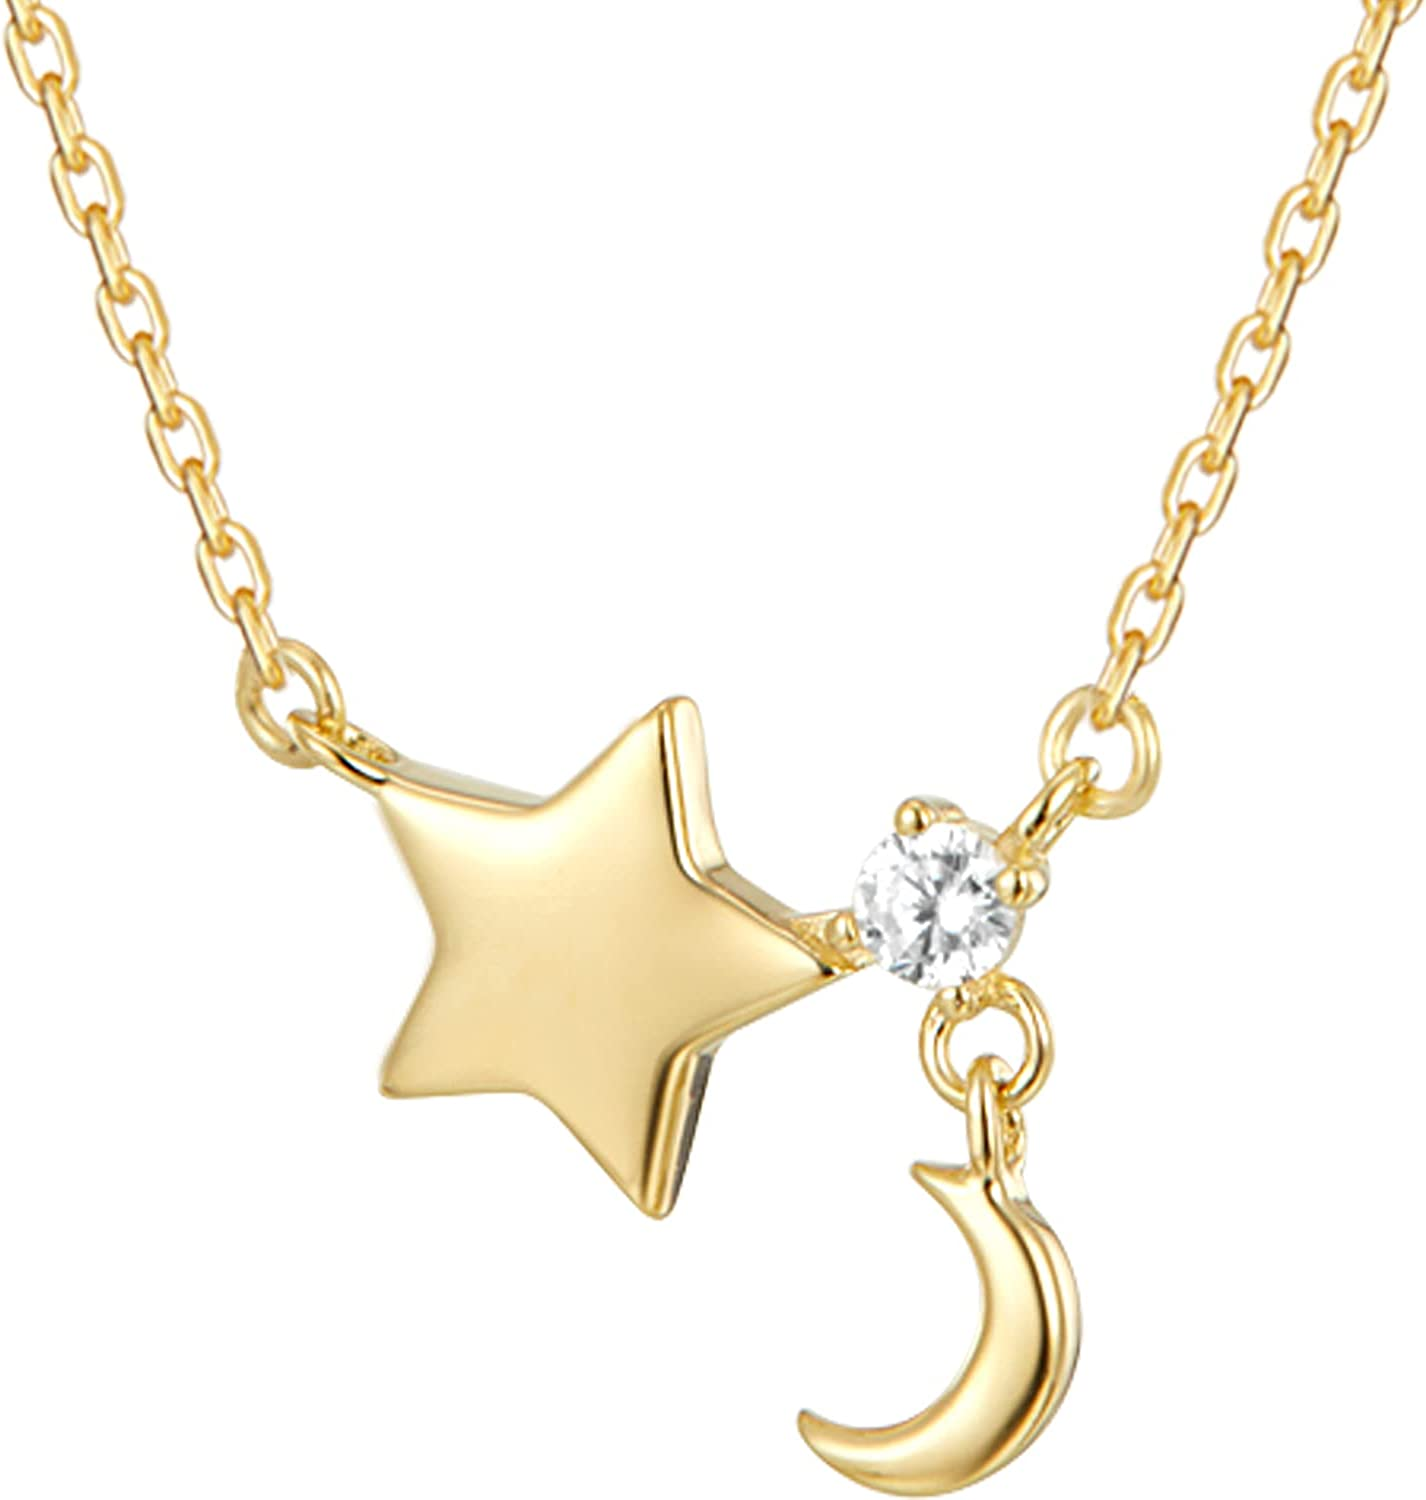 T TOSSINY Moon Star Necklaces for Womens Girls 18K Gold Plated Simple Crescent Pendant Lariat Y Necklace Jewelry Gifts for Her